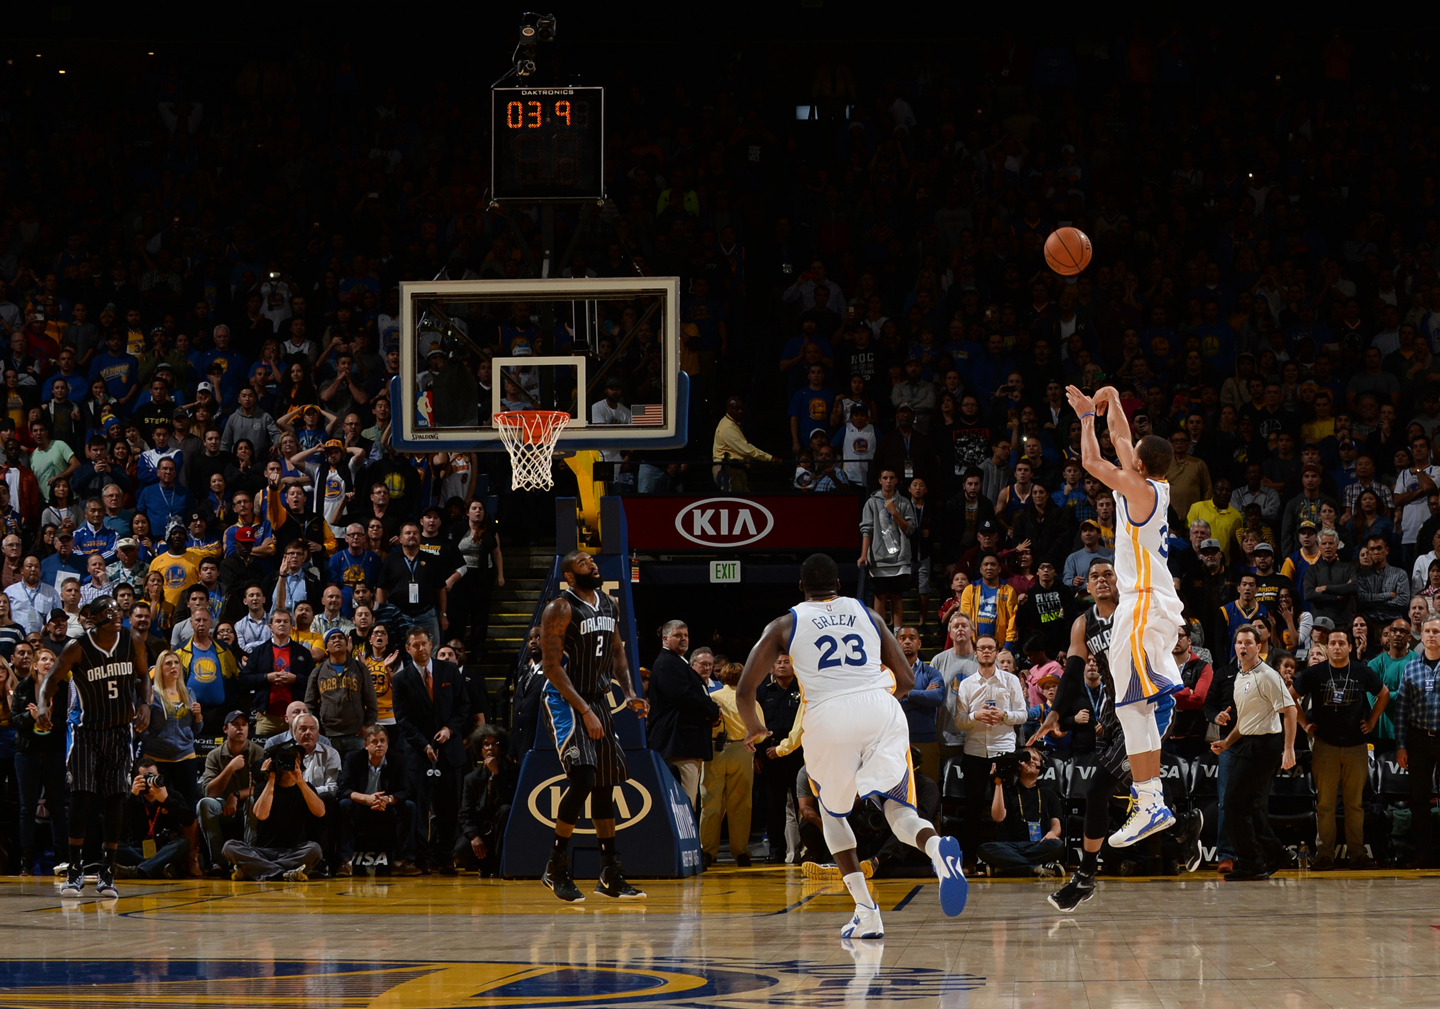 Stephen Curry #30 of Golden State Warriors takes a shot as time runs down against the Orlando Magic on December 2, 2014 at Oracle Arena in Oakland, California.